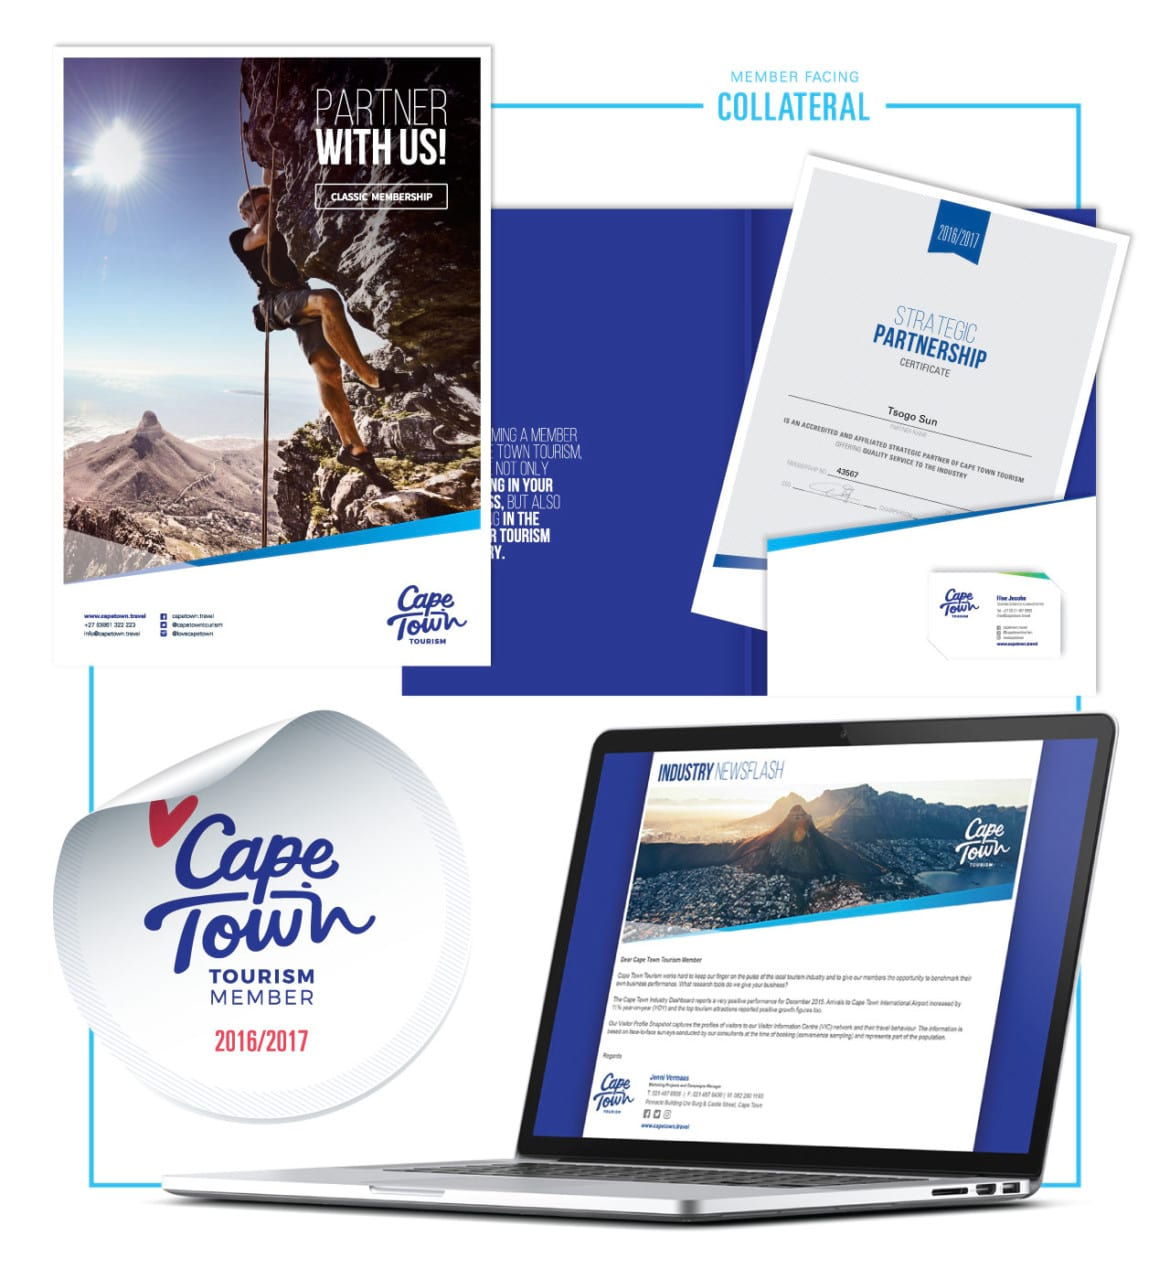 Cape Town Tourism brand Case study member collateral